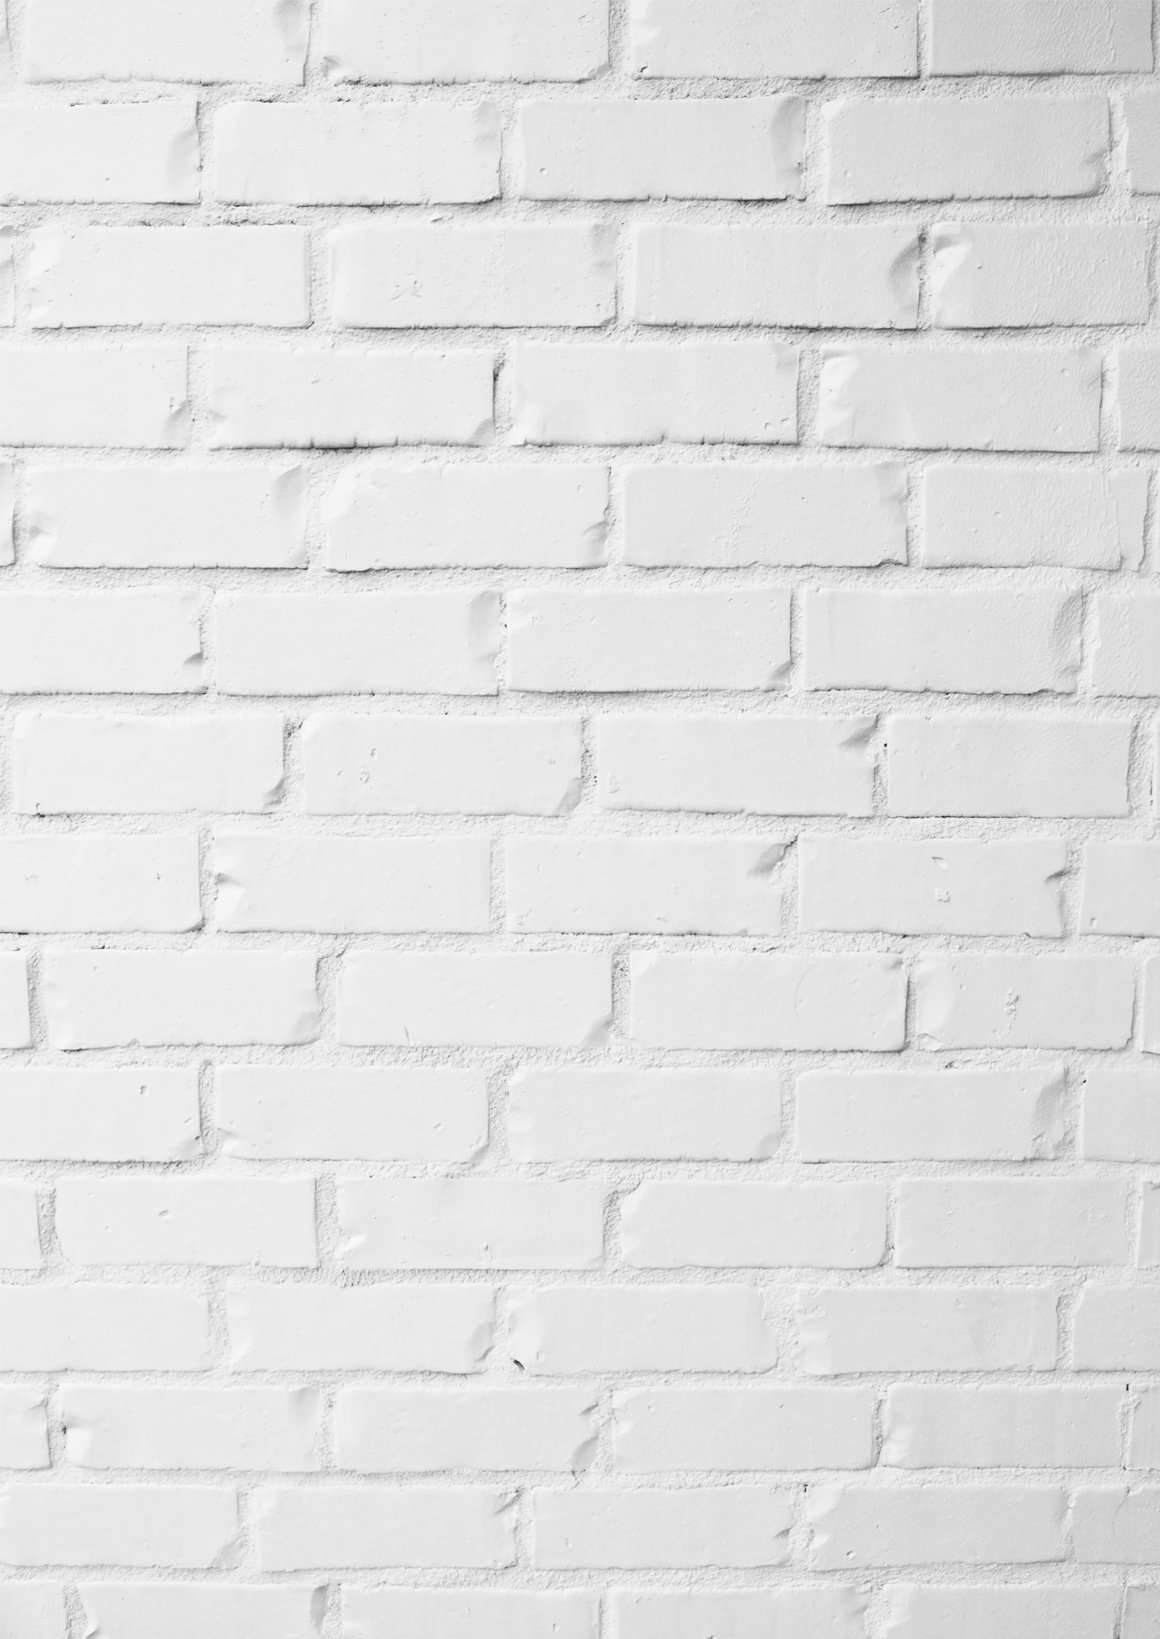 White Brick Wall Of White Brick Wall Texture Textures Creative Market